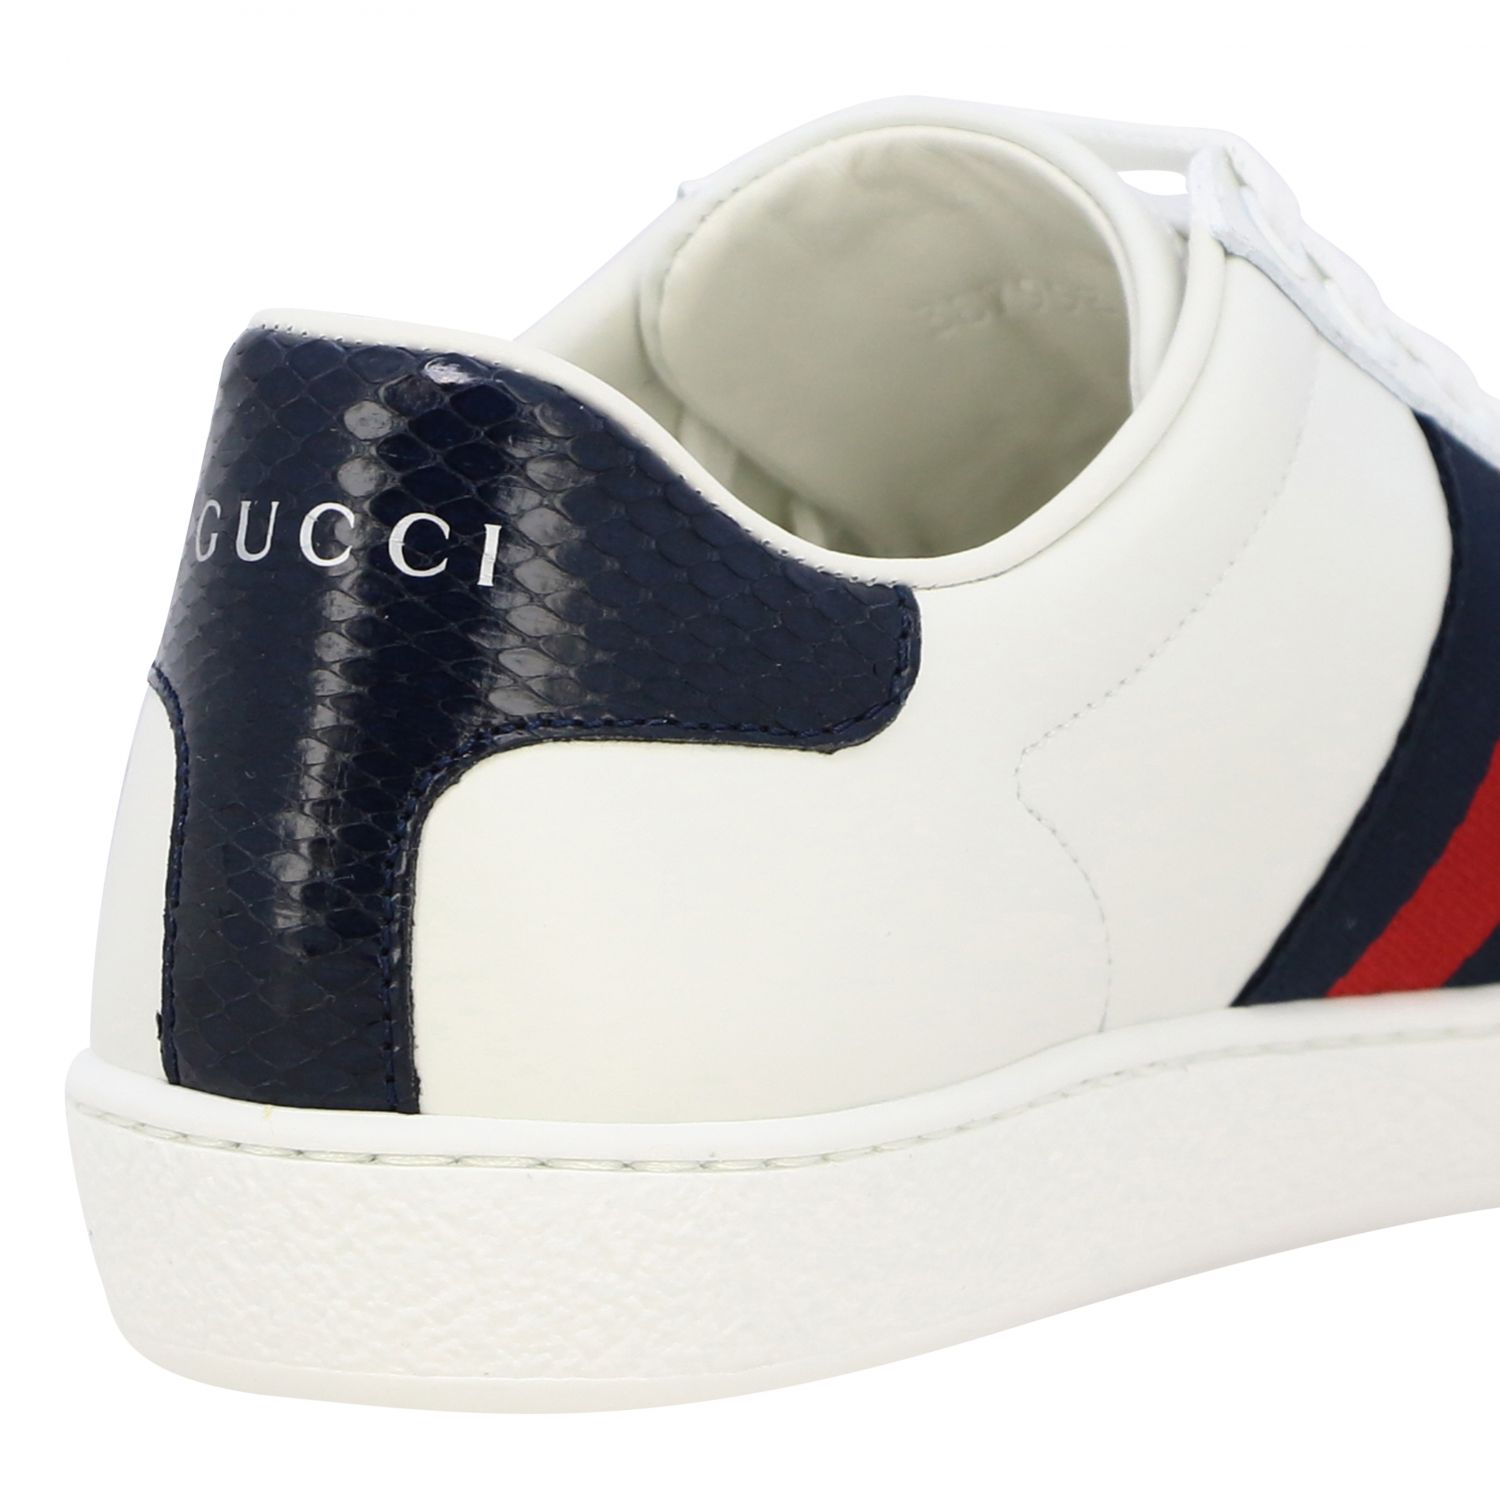 Sneakers New Ace Gucci in pelle con fasce Web bianco 5